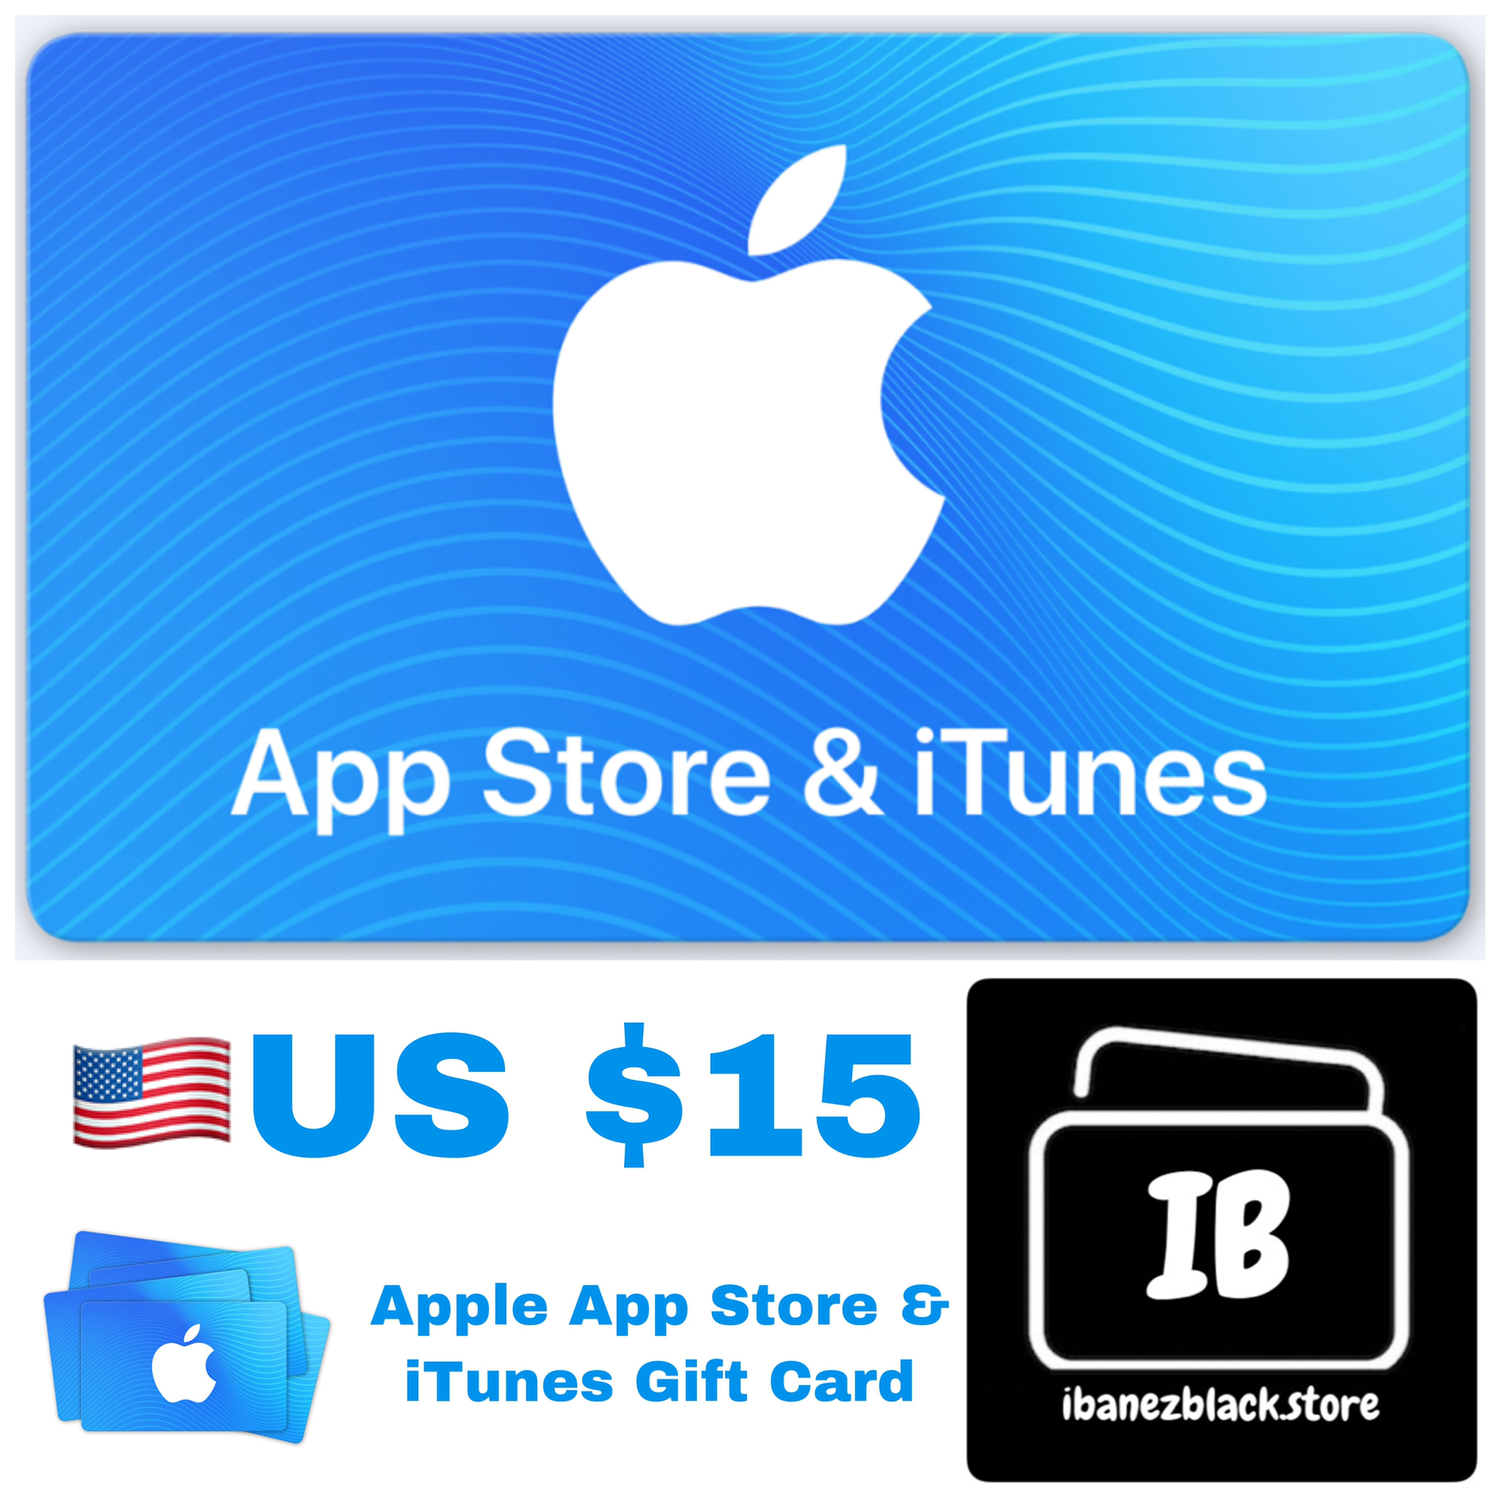 Apple App Store & iTunes Gift Cards US $15